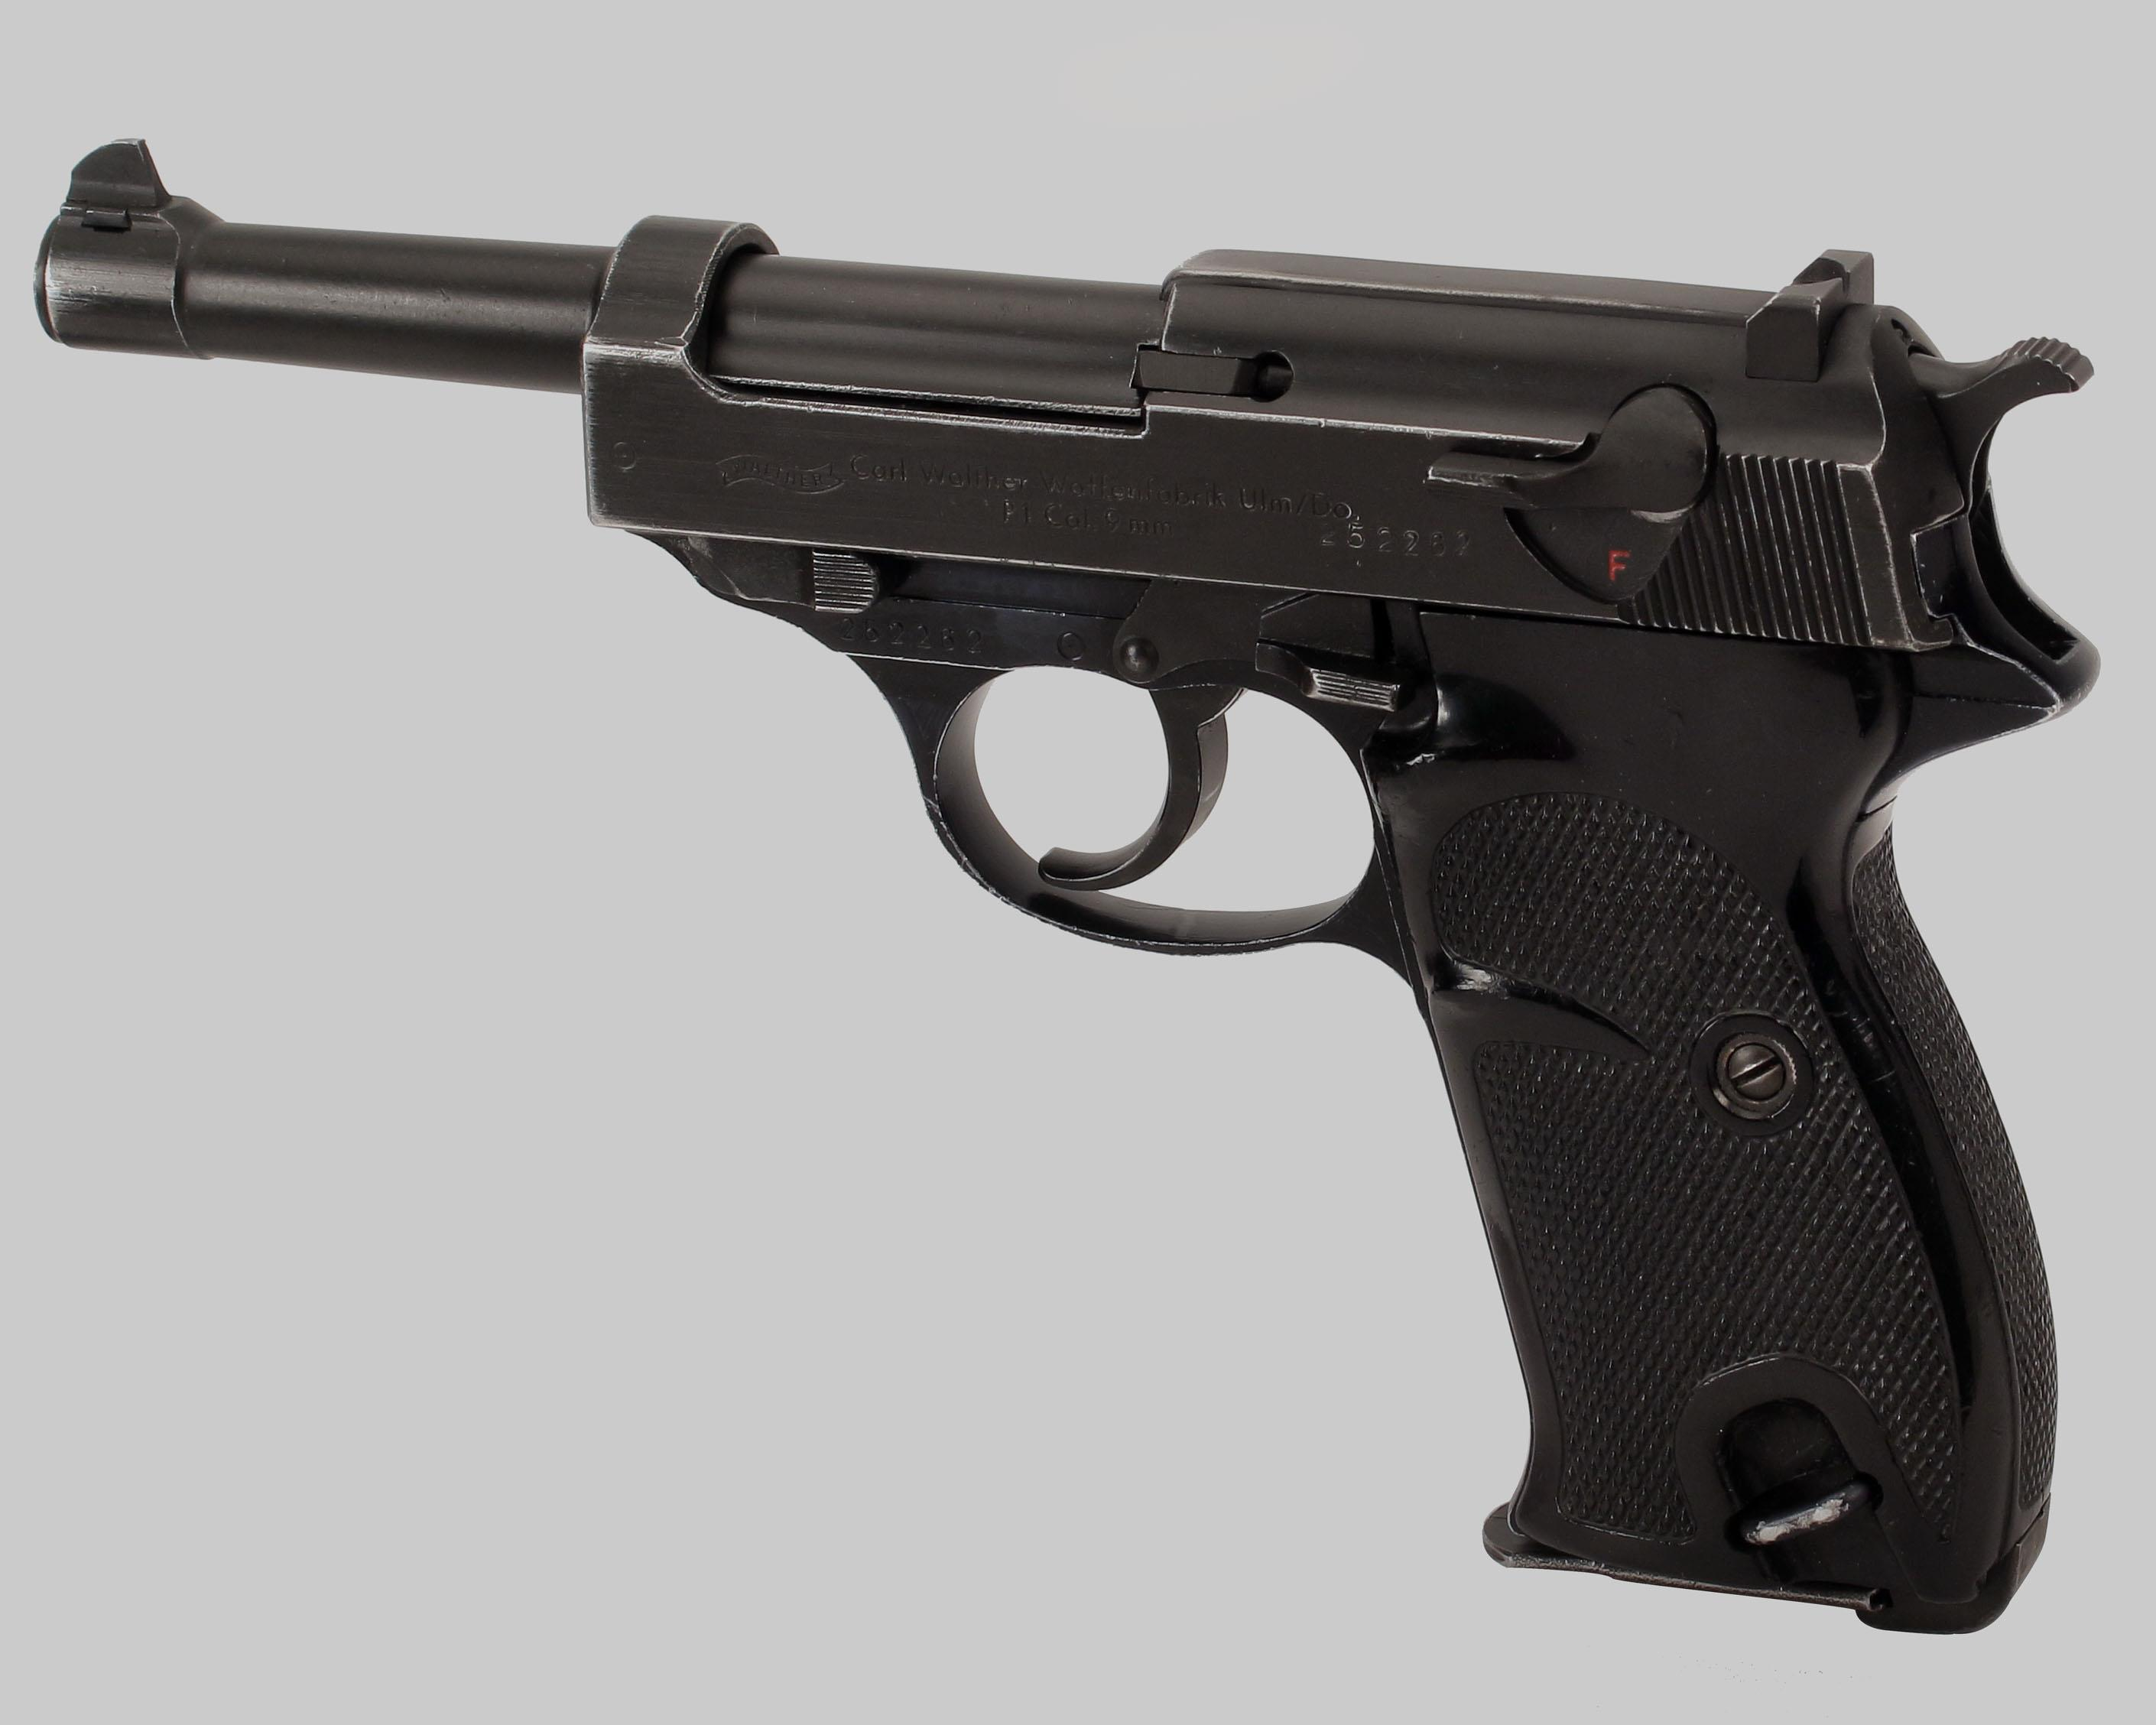 Walther P1 9mm Pistol  Guns > Pistols > Walther Pistols > Pre-1945 > Other